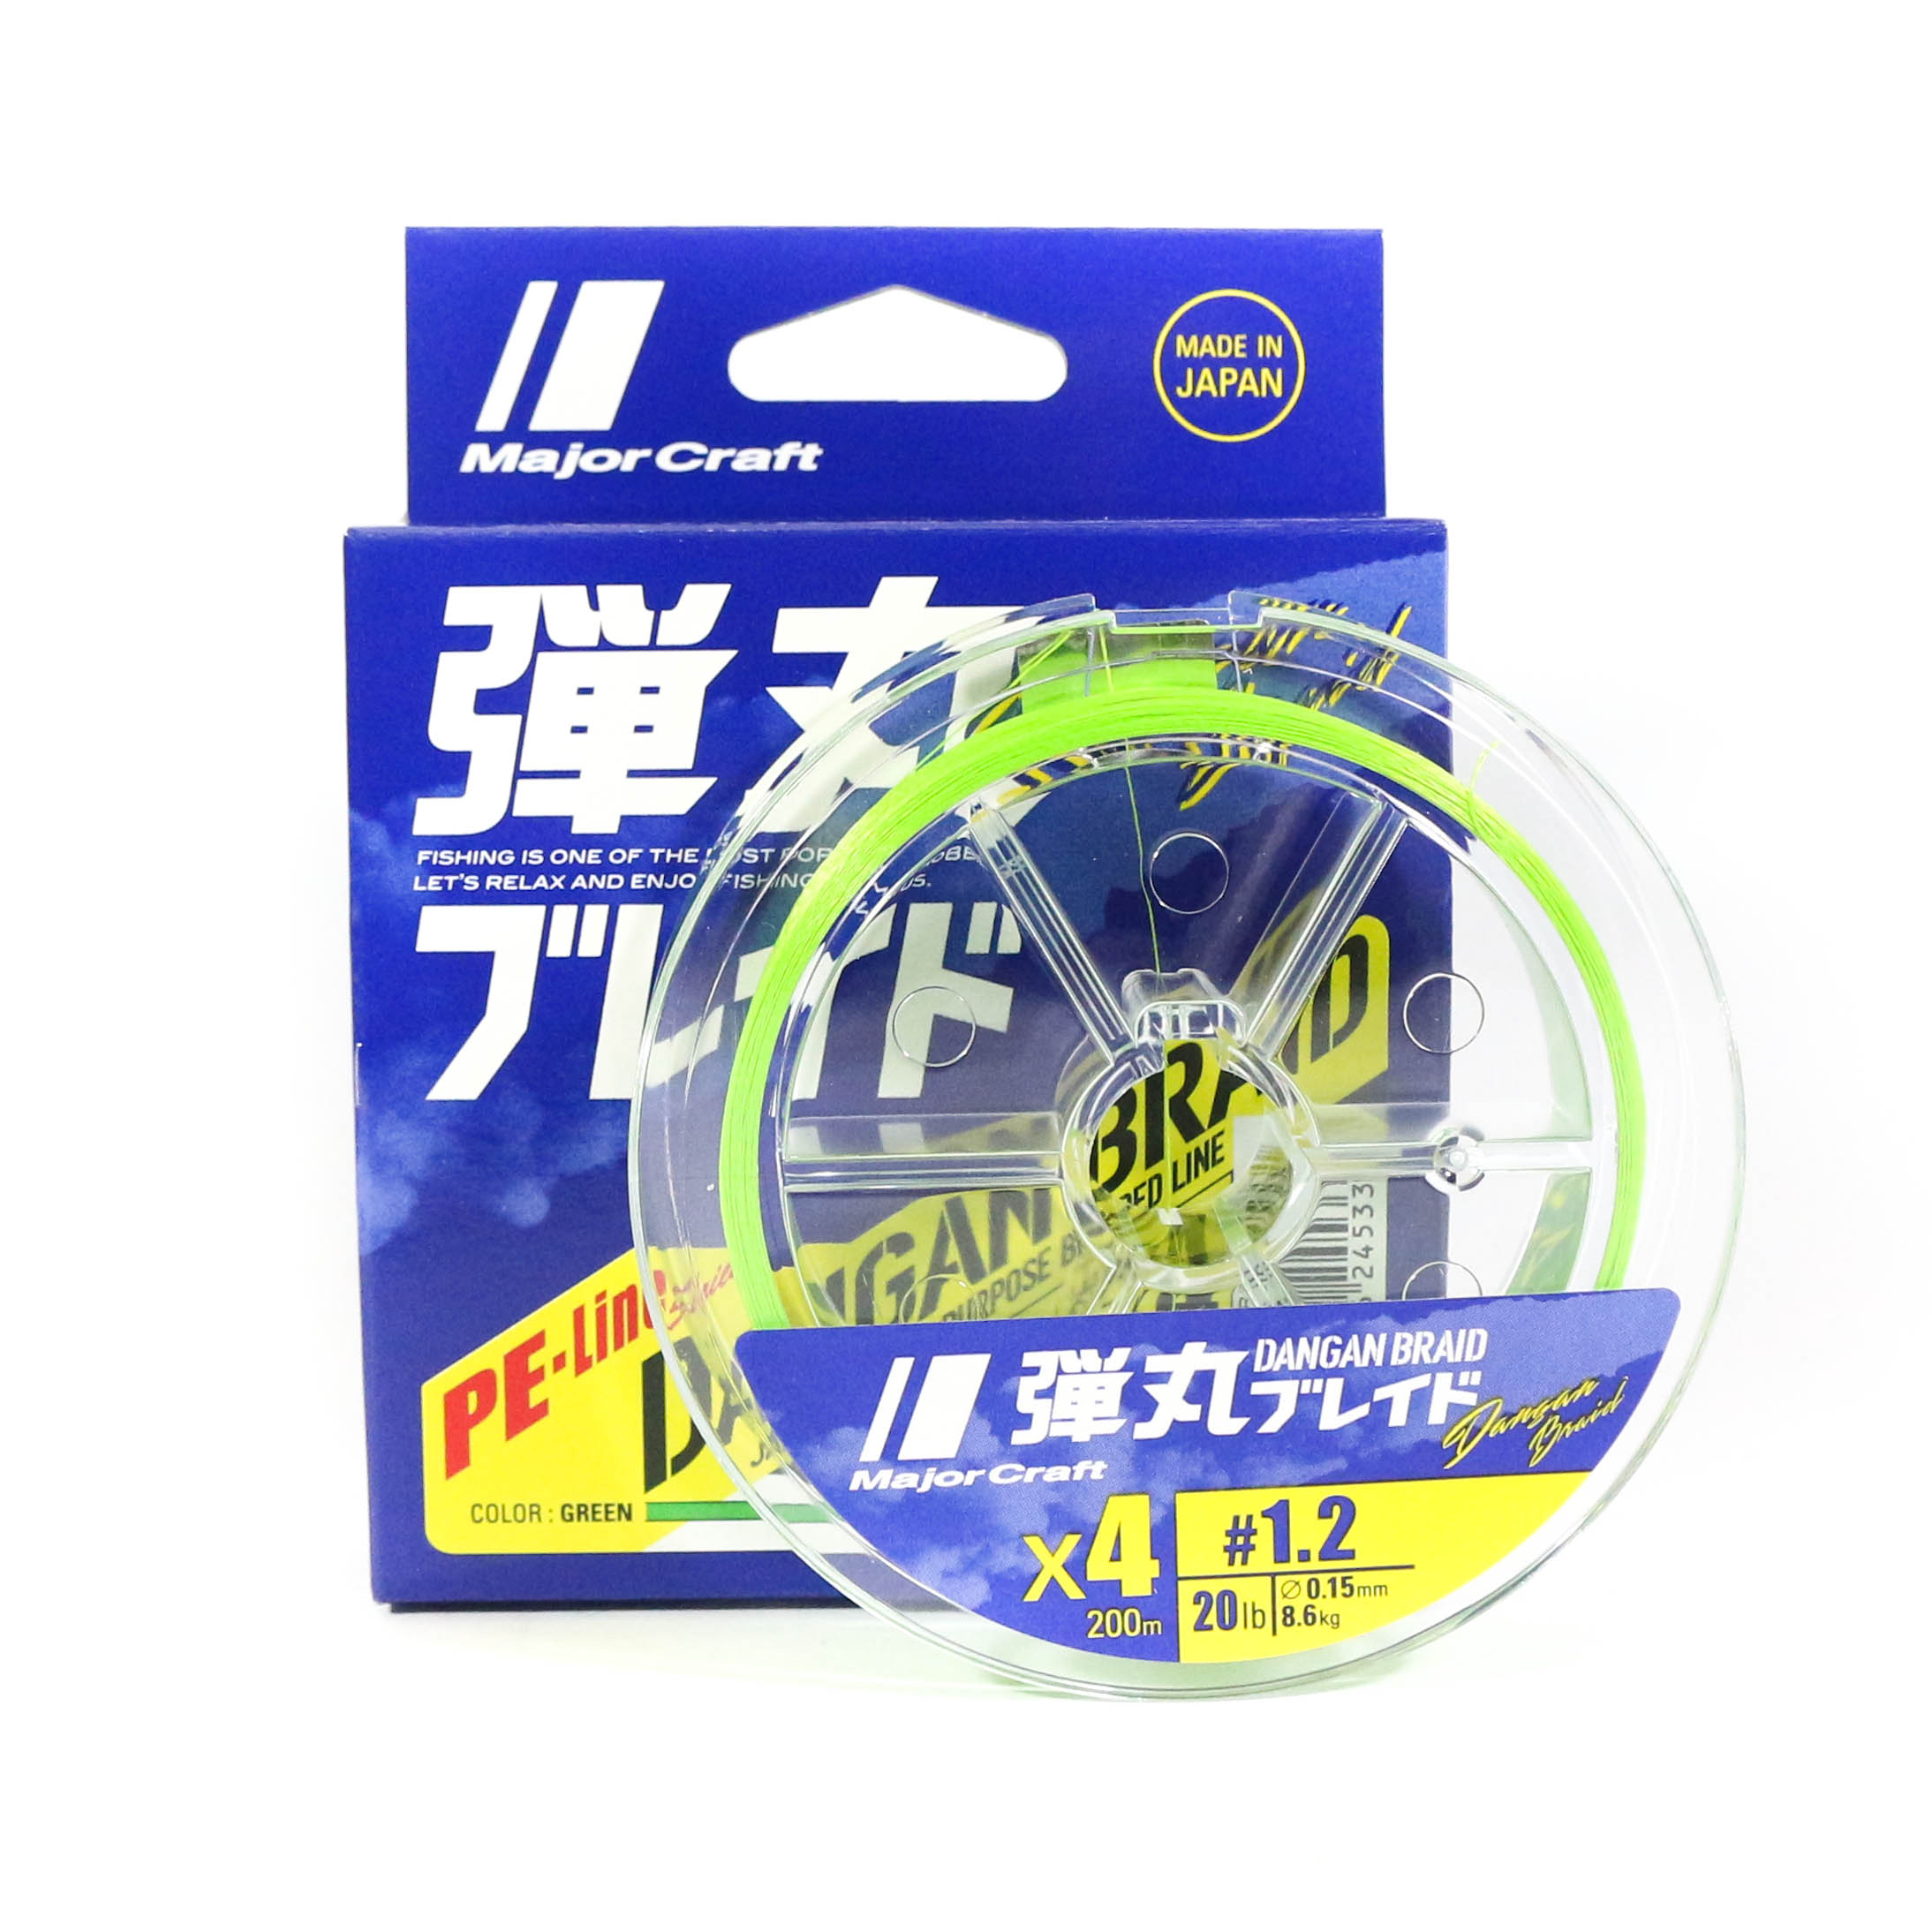 Major Craft Dangan Braided Line X4 200m P.E 1.2 Green DB4-200/1.2GR/20lb (5331)